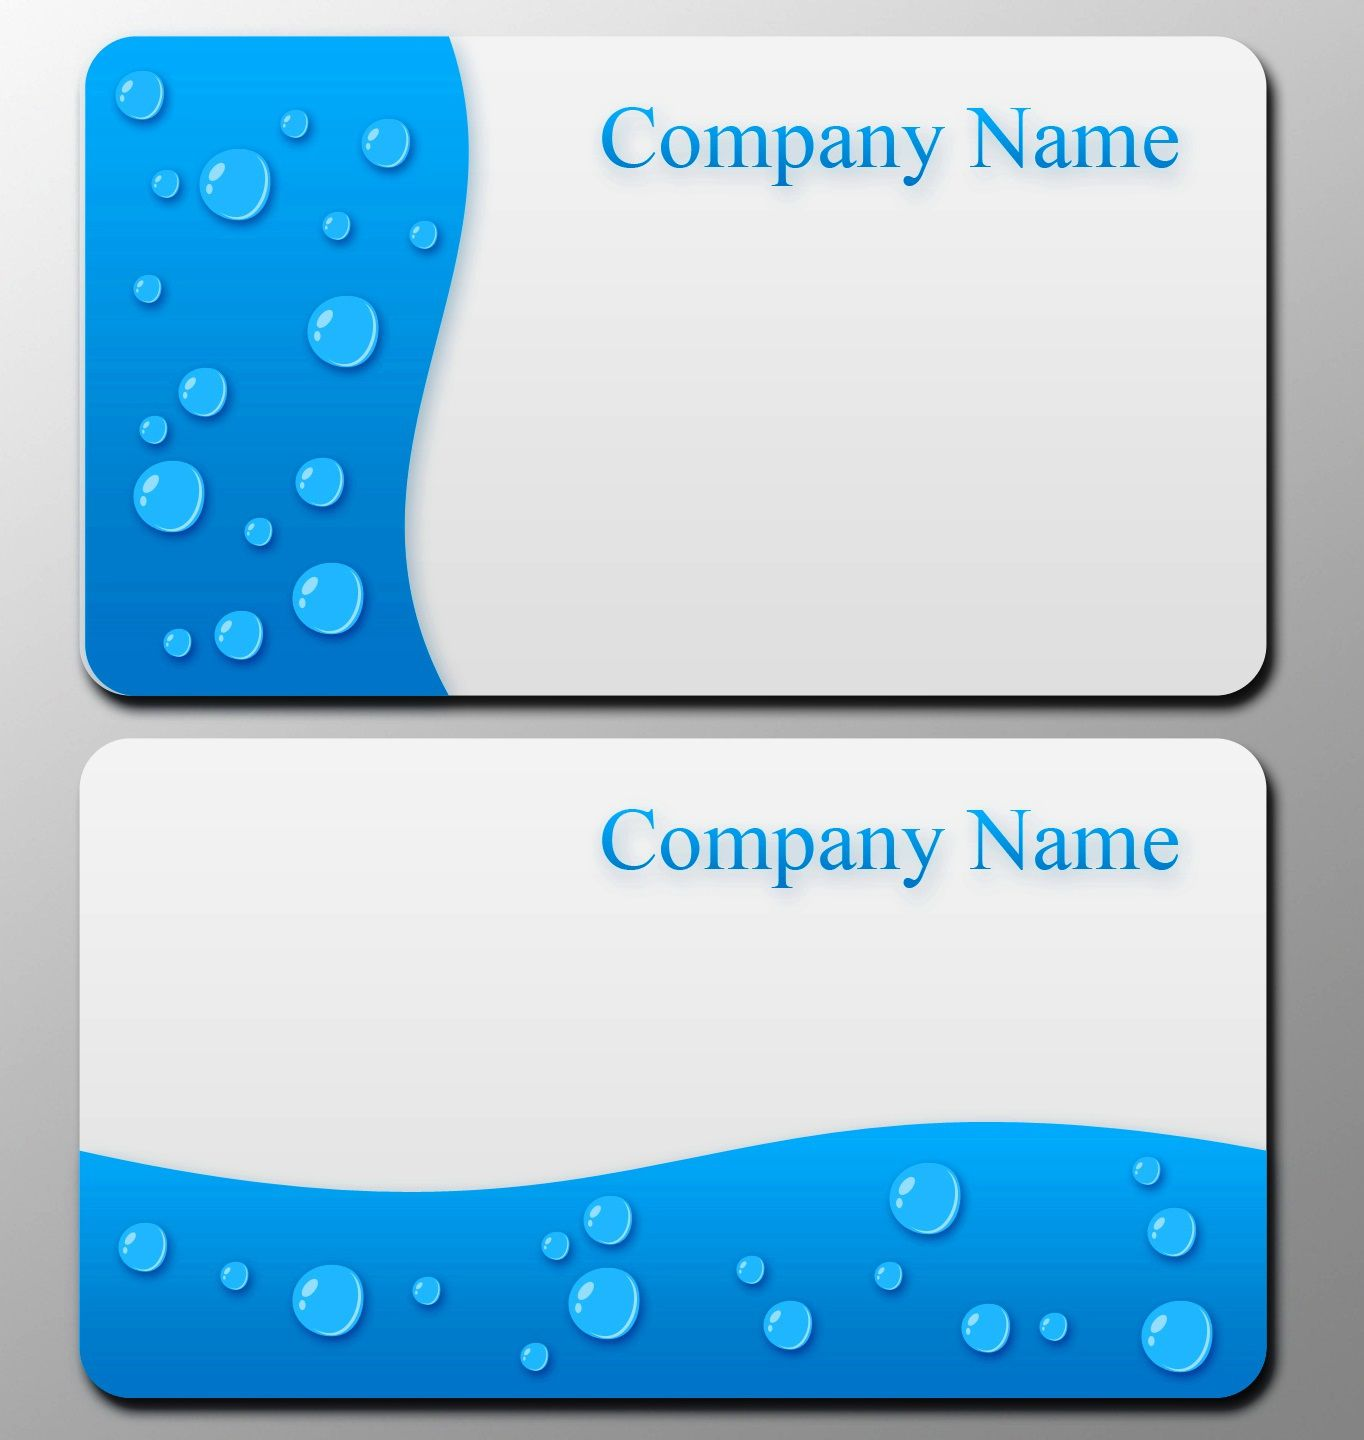 005 Staggering Blank Busines Card Template Psd Free High Resolution  Photoshop DownloadFull